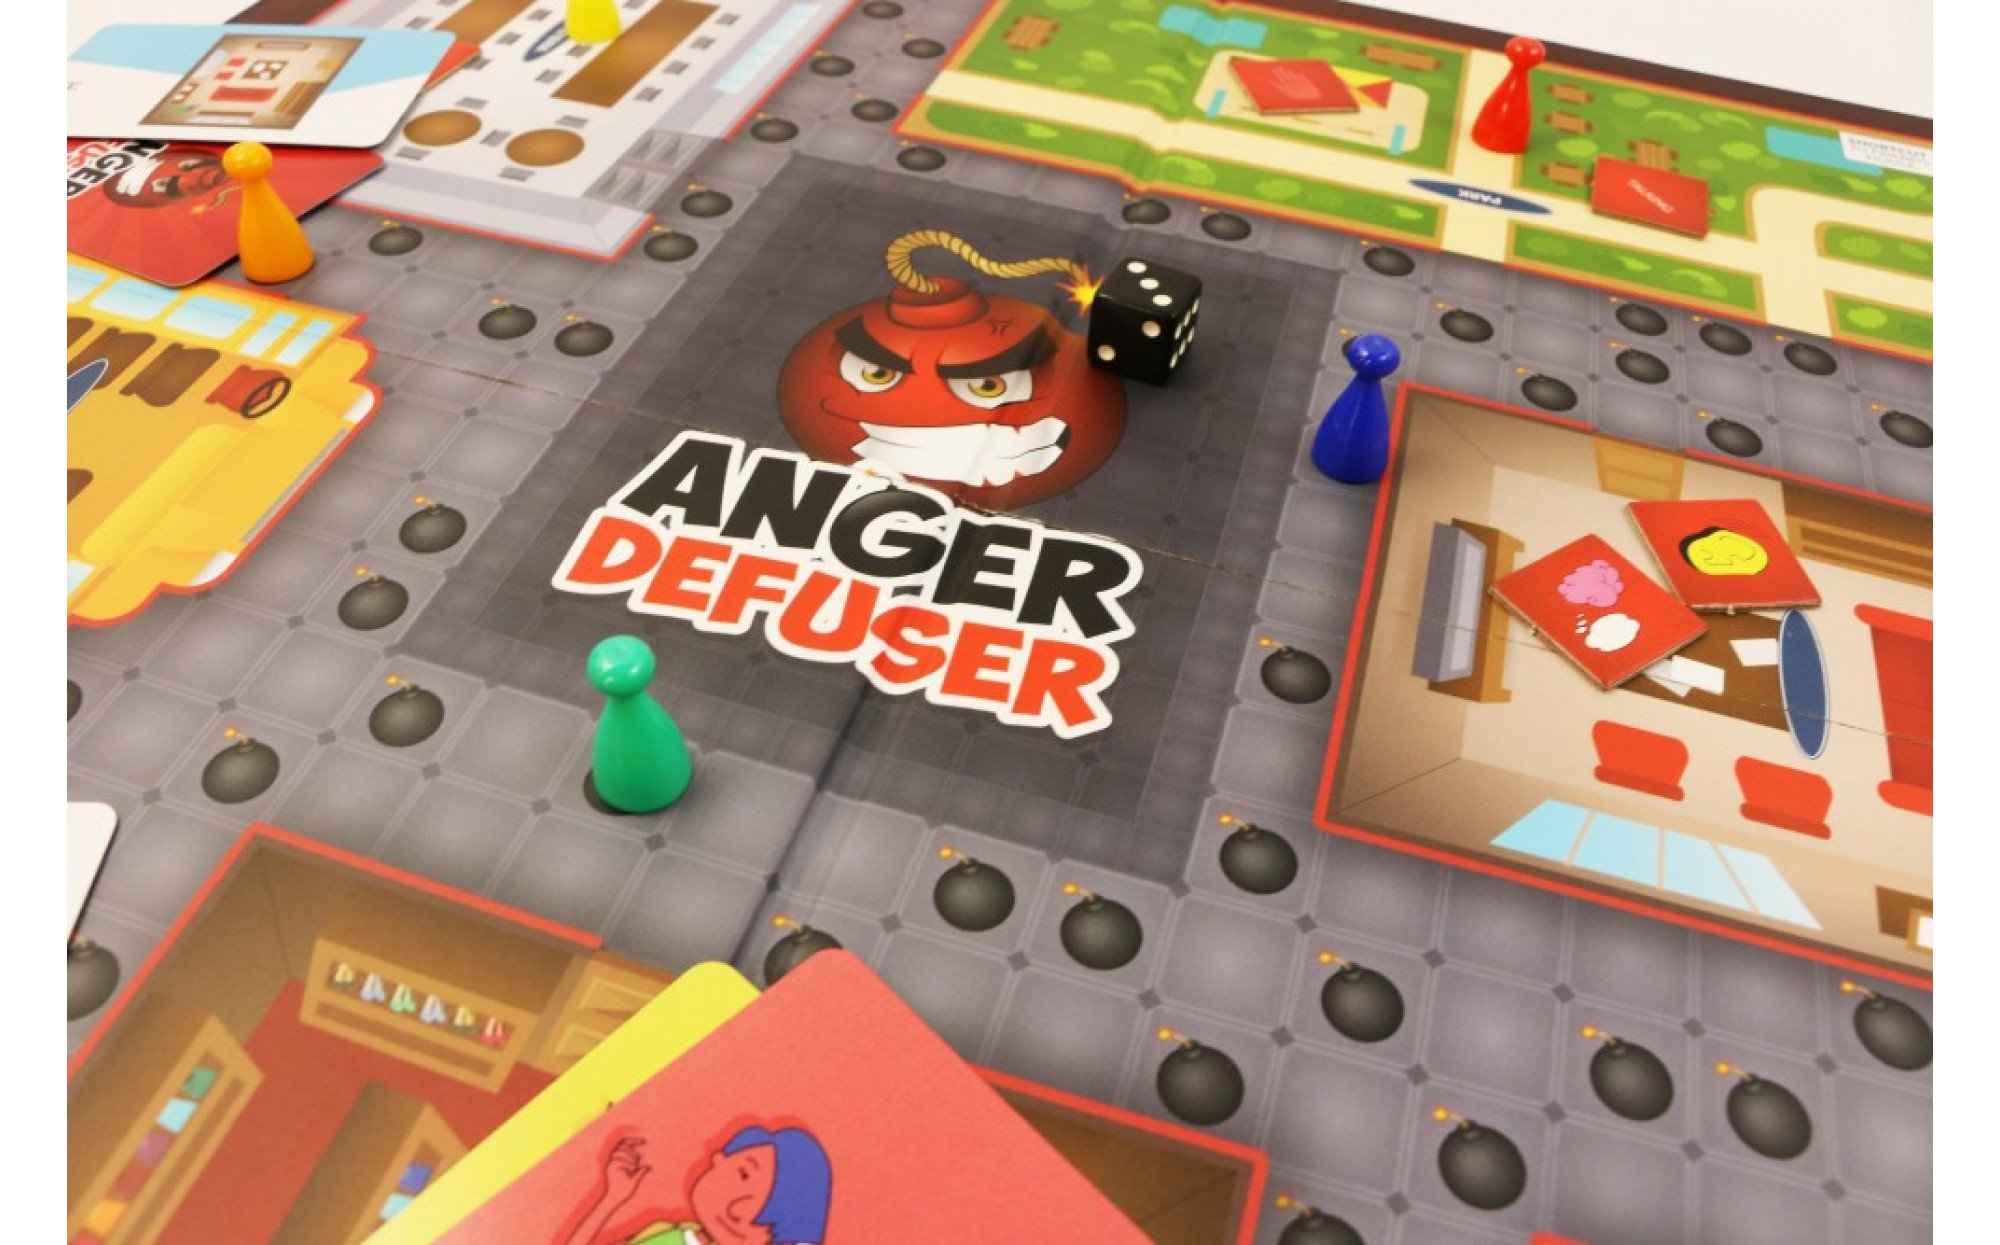 Fun Toys For Teenagers : Anger defuser: the fun anger control game for kids and teens